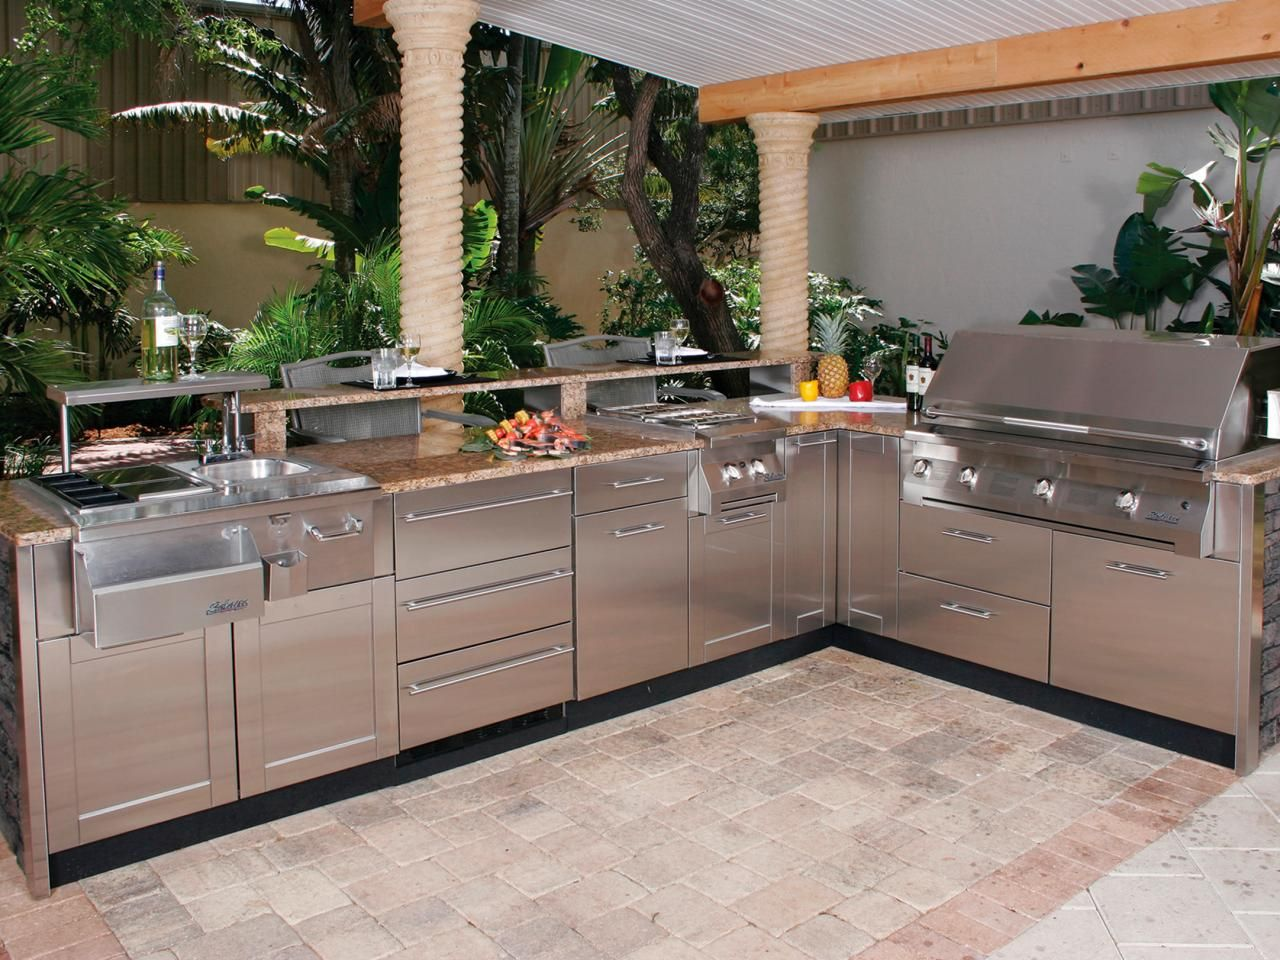 Outdoor Rooms Add Livable Space Outdoor Kitchen Cabinets Outdoor Kitchen Design Outdoor Kitchen Design Layout